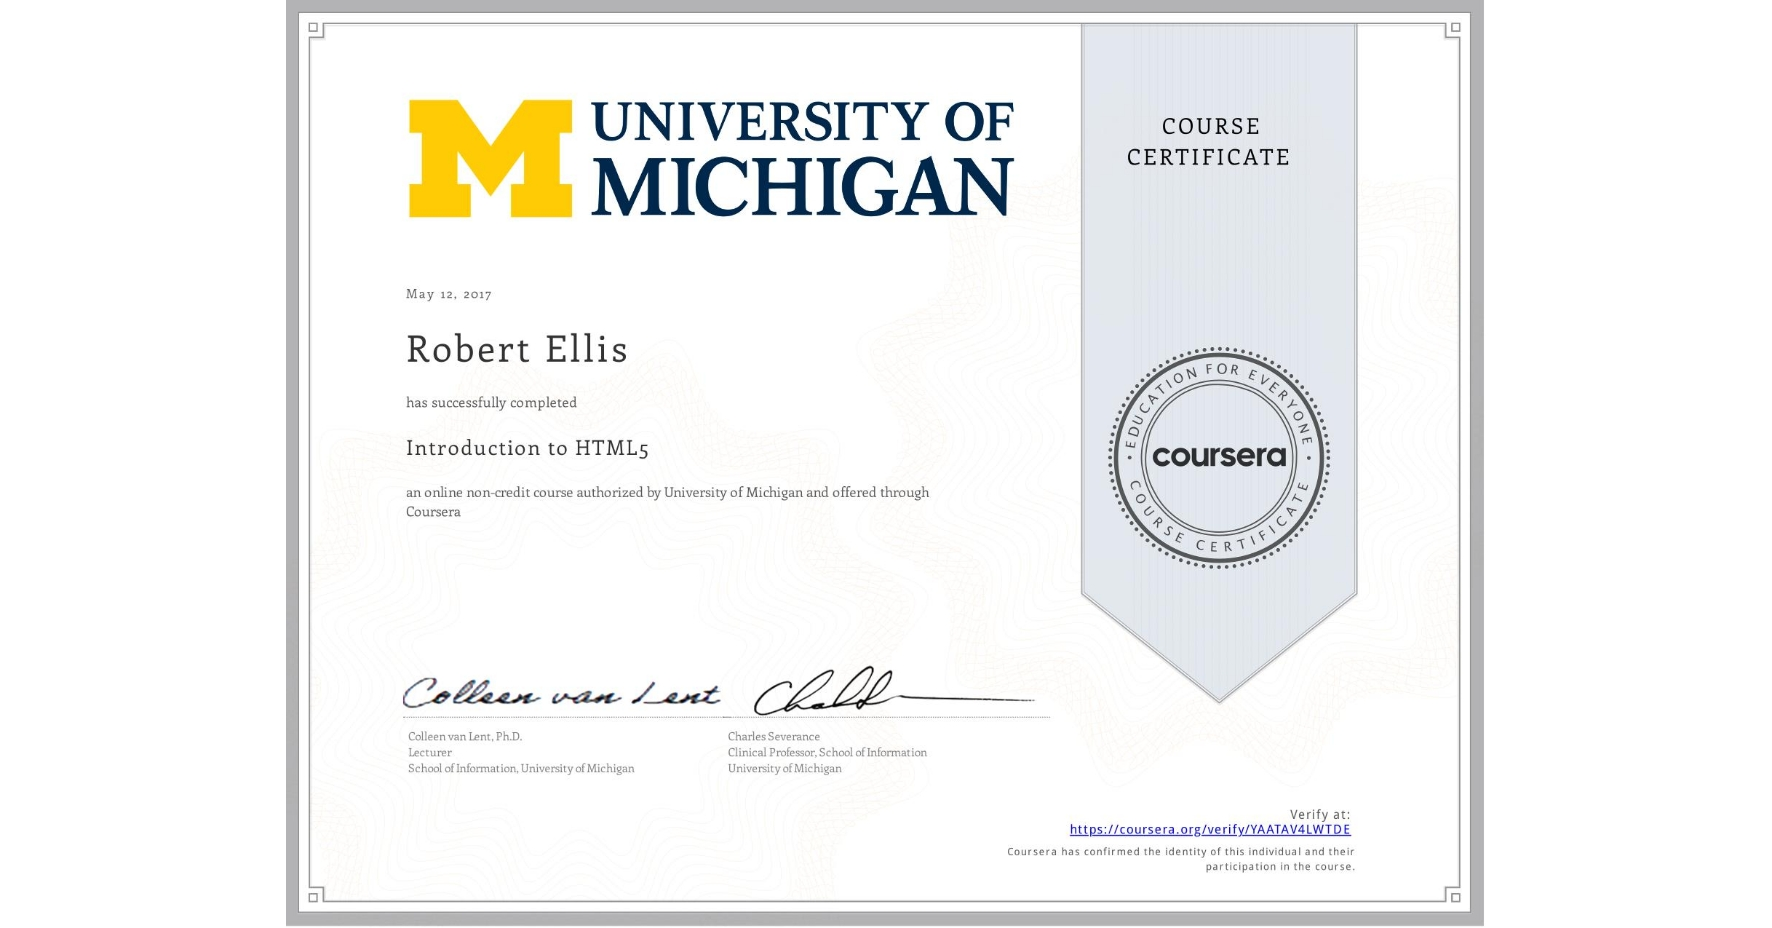 View certificate for Robert Ellis, Introduction to HTML5, an online non-credit course authorized by University of Michigan and offered through Coursera